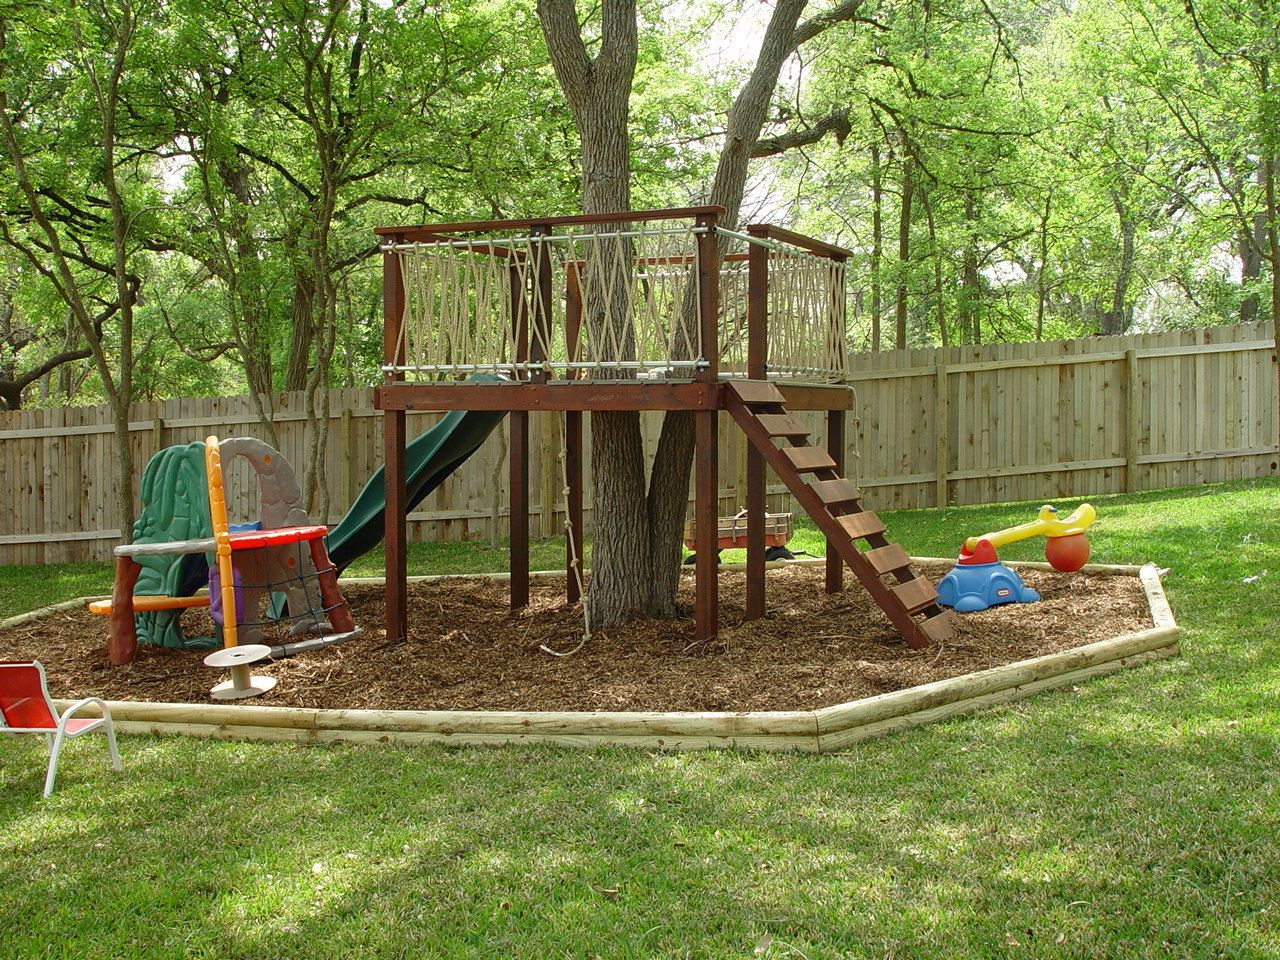 trying to find an easy but cool tree house to build for our three